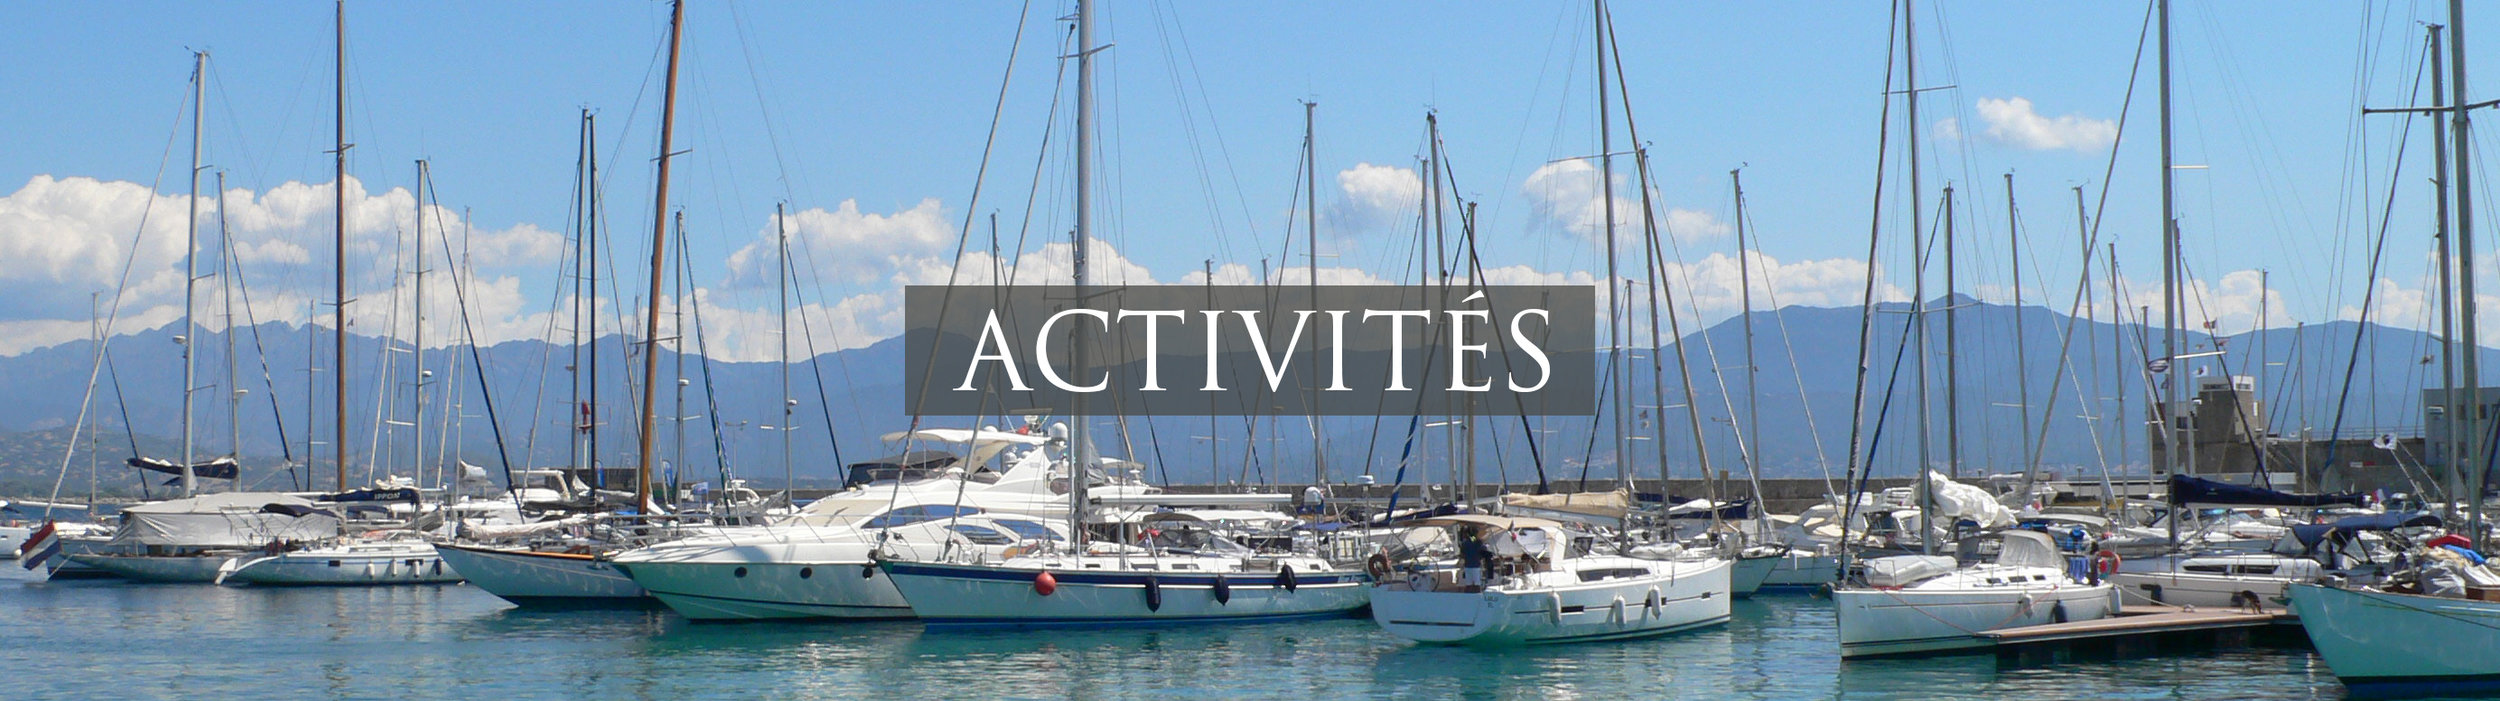 ActivitiesBanner-FRENCH.jpg